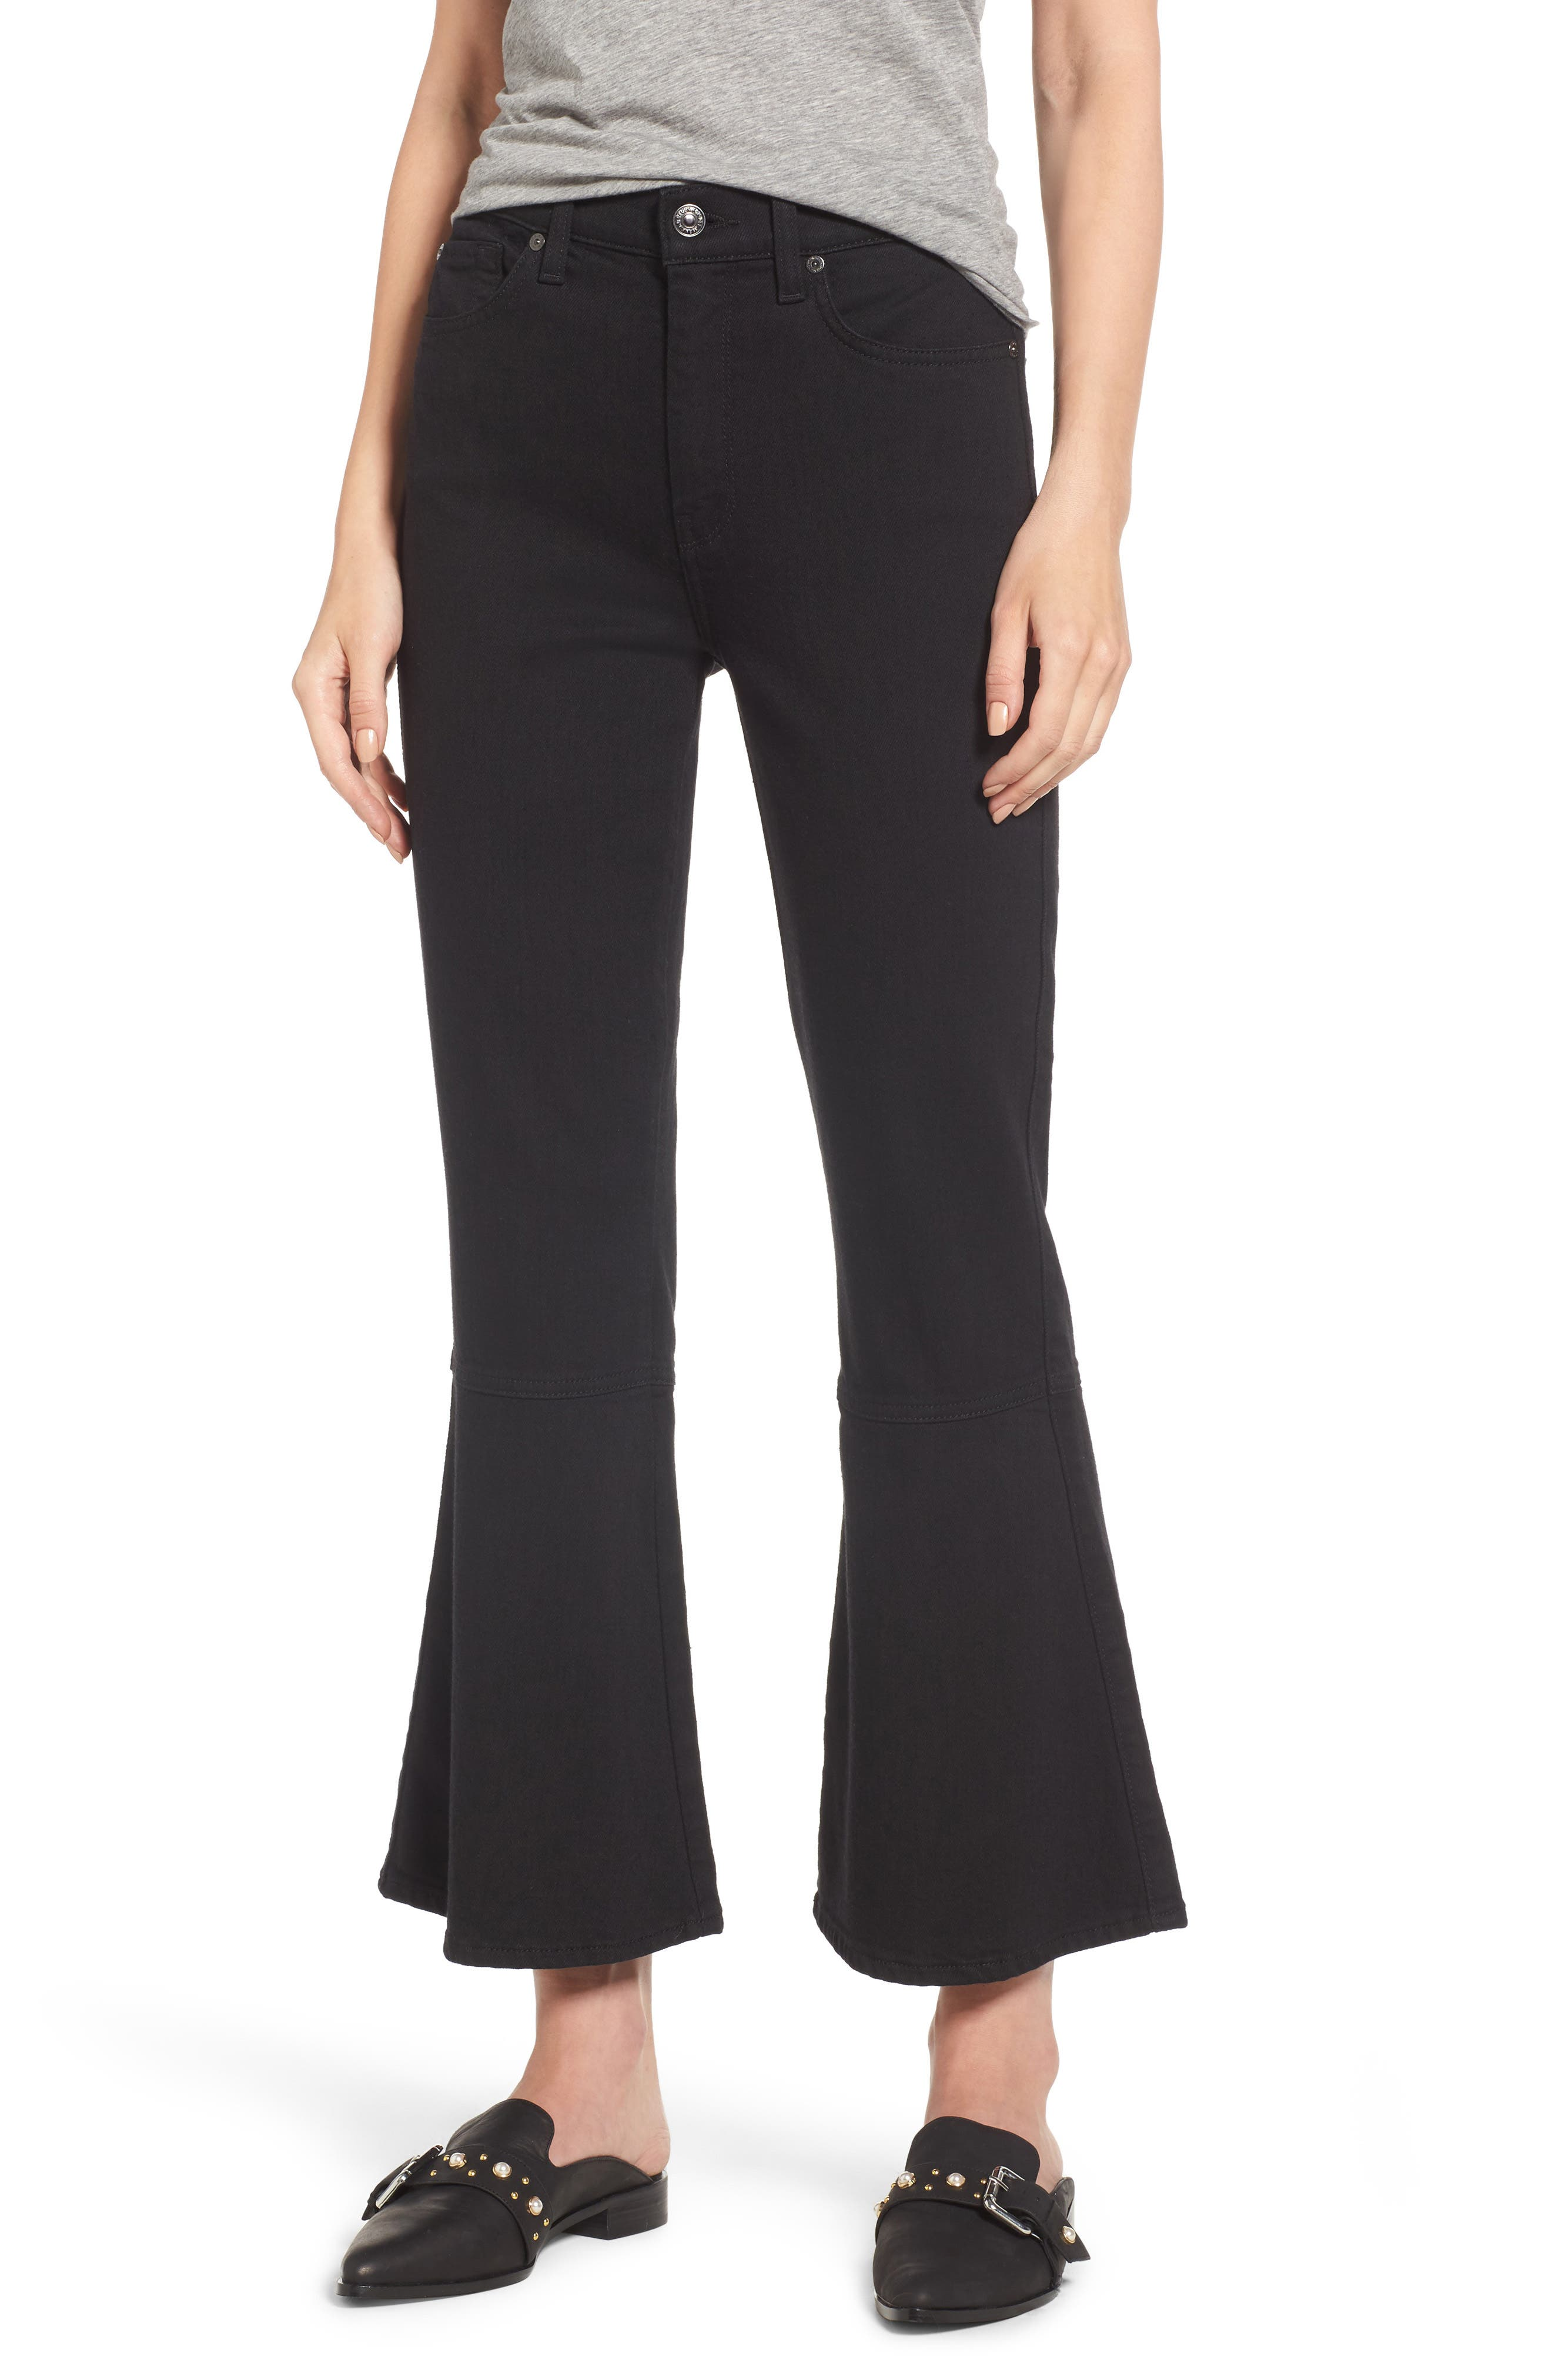 Alternate Image 1 Selected - 7 For All Mankind® Priscilla High Waist Crop Flare Jeans (Night Black)